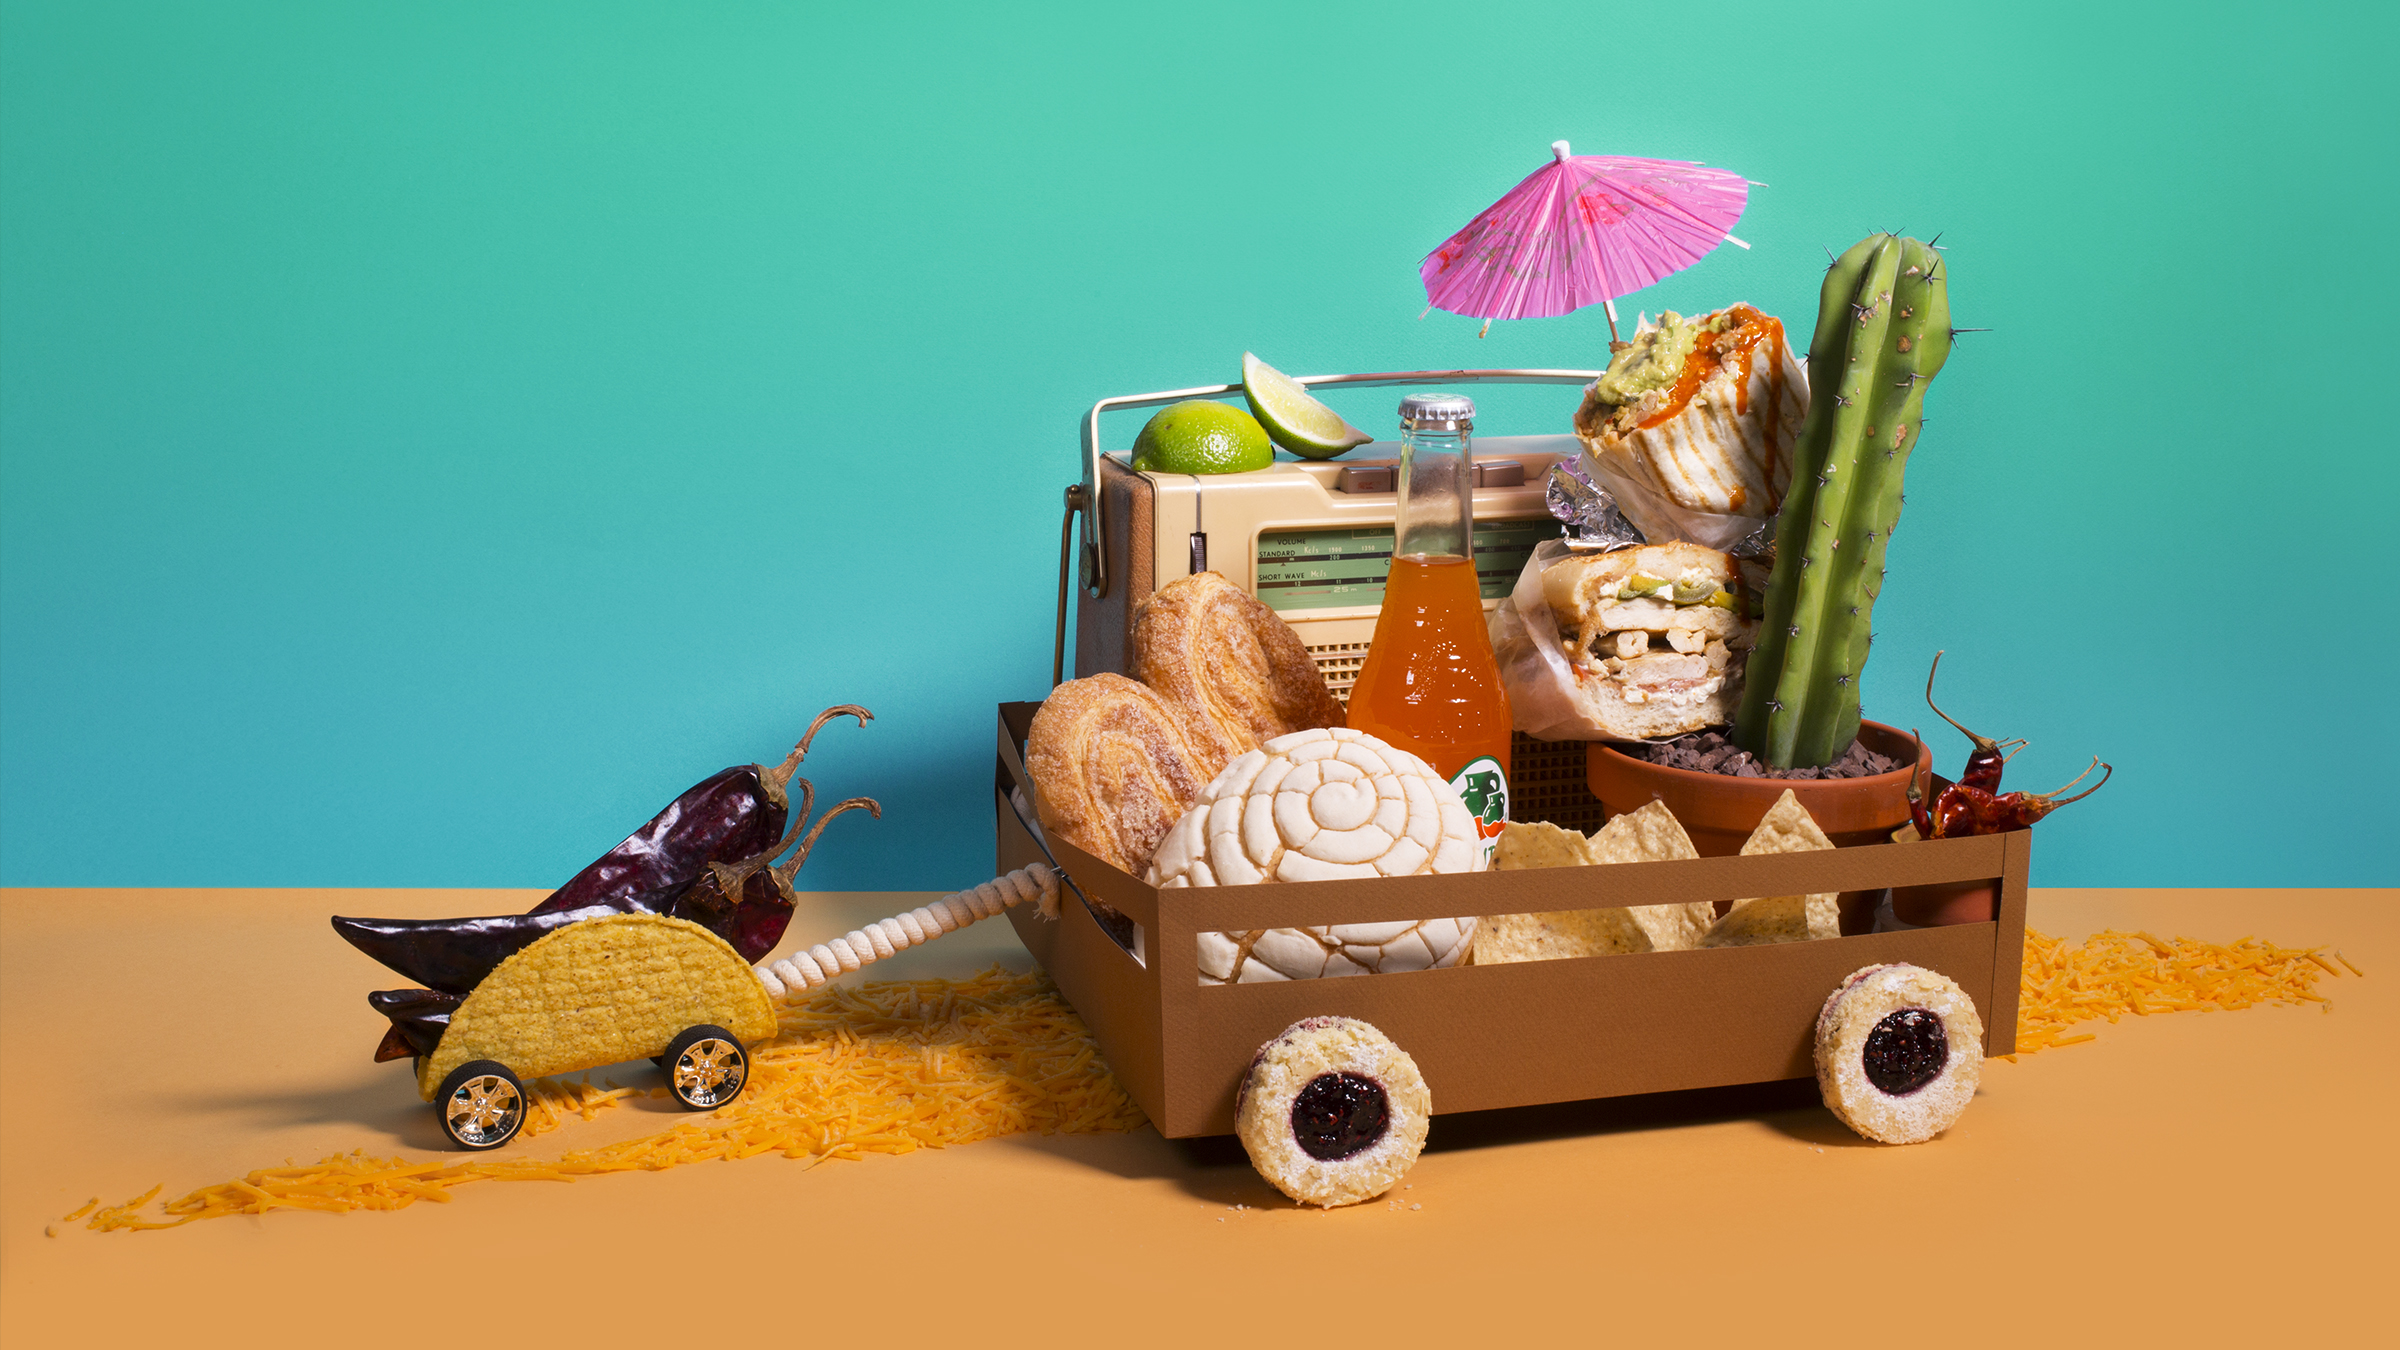 All the delicious fooooood illustration for    Driving The Mexican Mother Road   –Gustavo Arellano